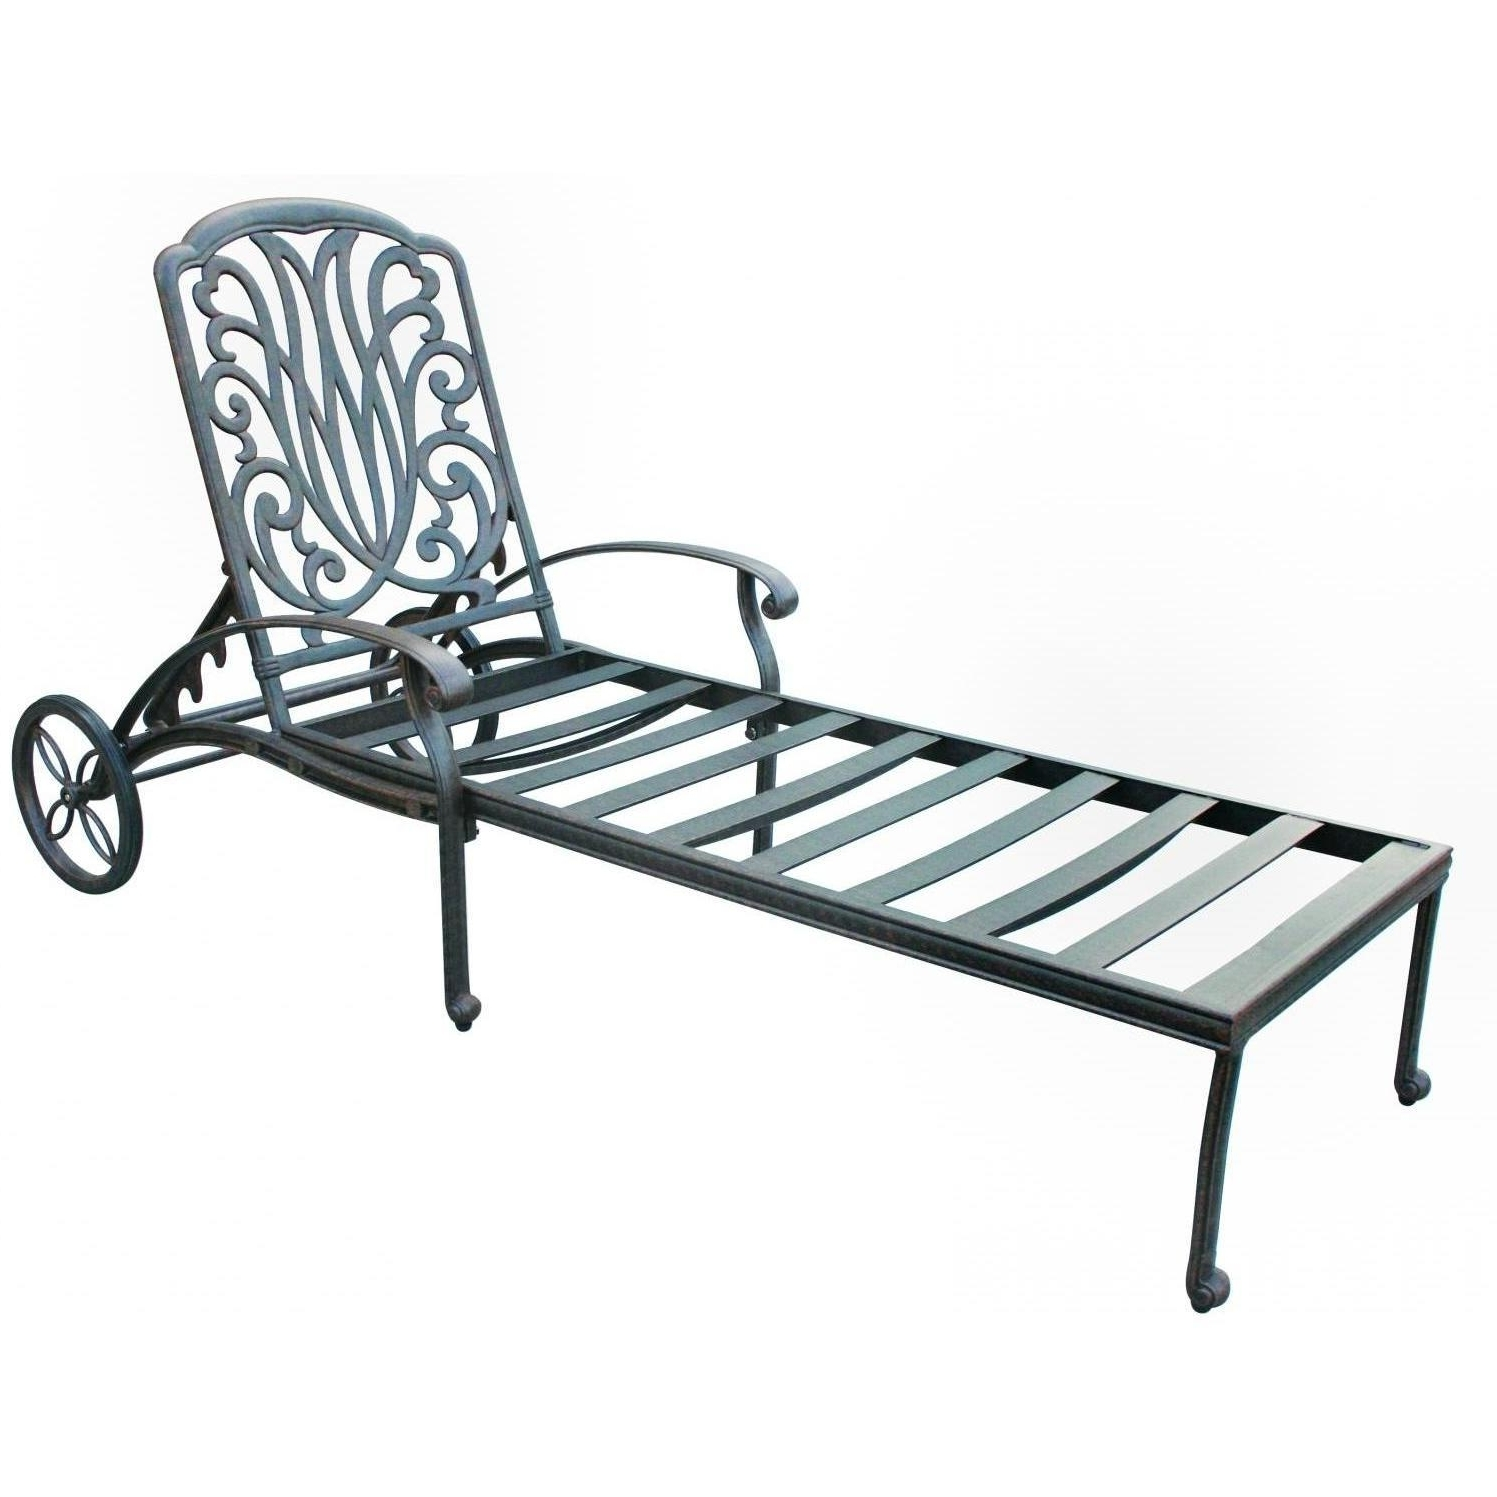 Darlee Elisabeth Cast Aluminum Patio Chaise Lounge : Ultimate Patio Regarding Most Current Cast Aluminum Chaise Lounges With Wheels (View 10 of 15)